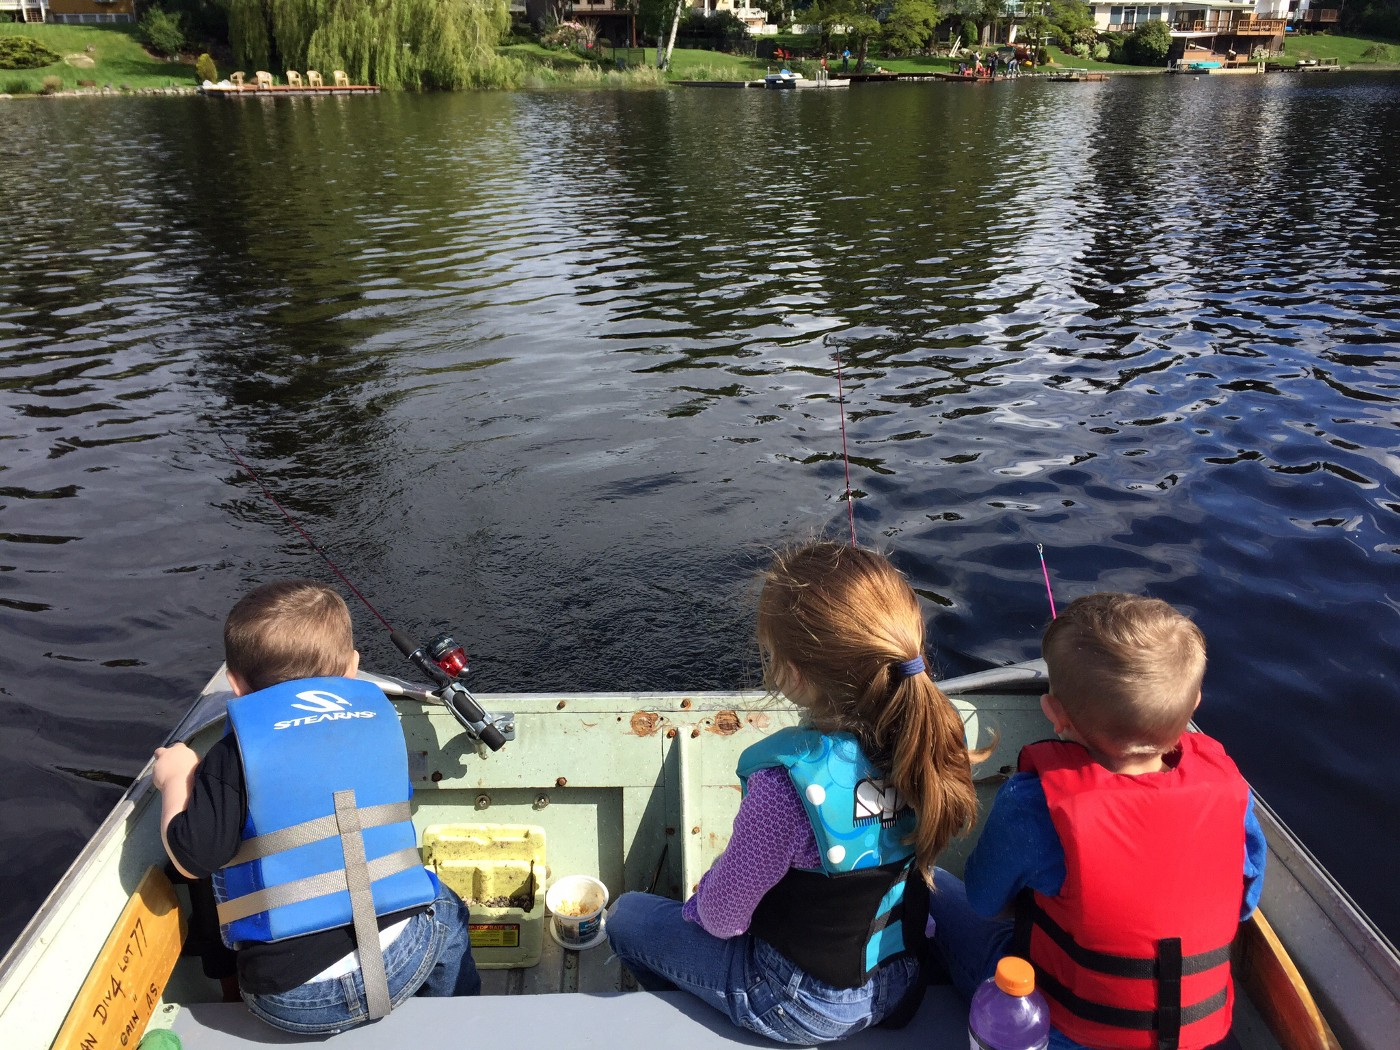 Three children fish in a lake from the back of a boat.